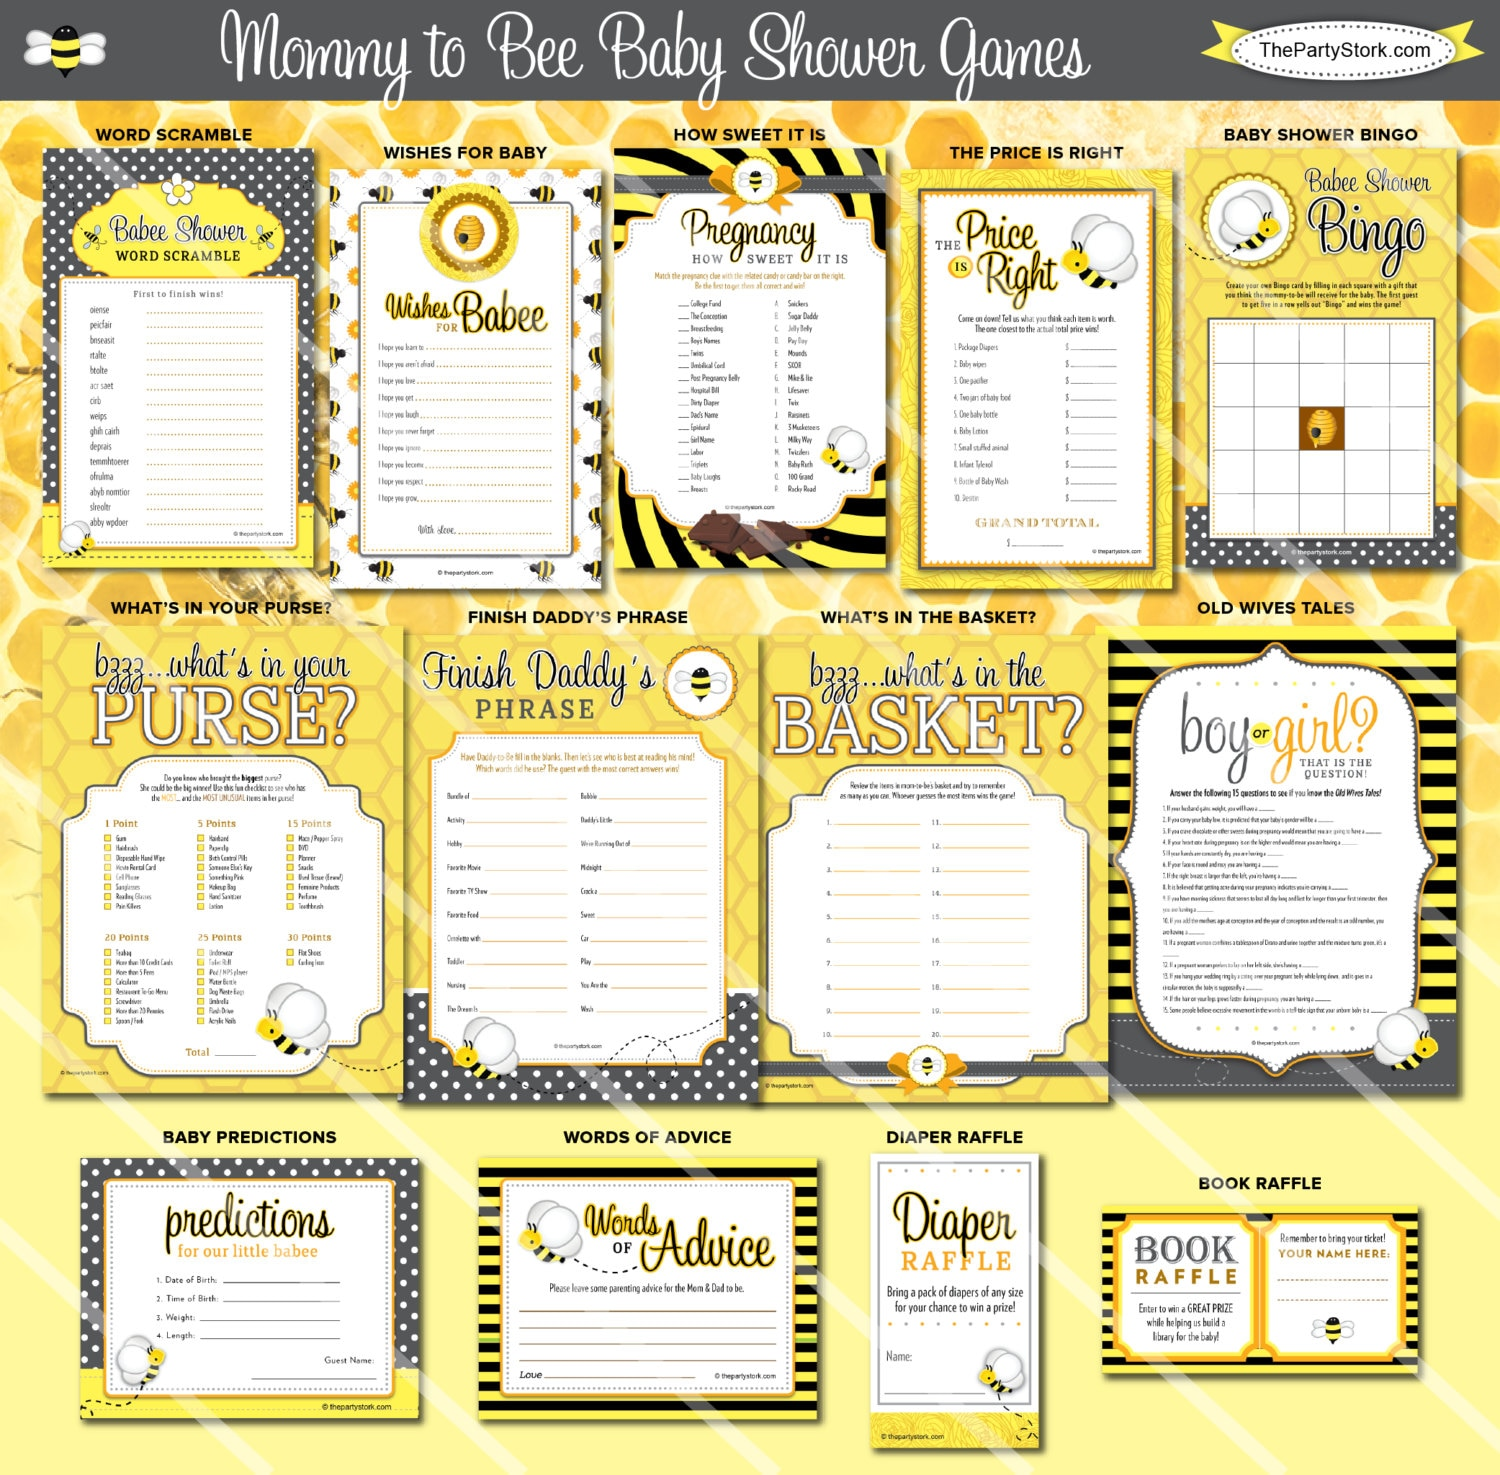 Baby Shower Games: Bee Baby Shower Games Mommy To Bee Theme Printable